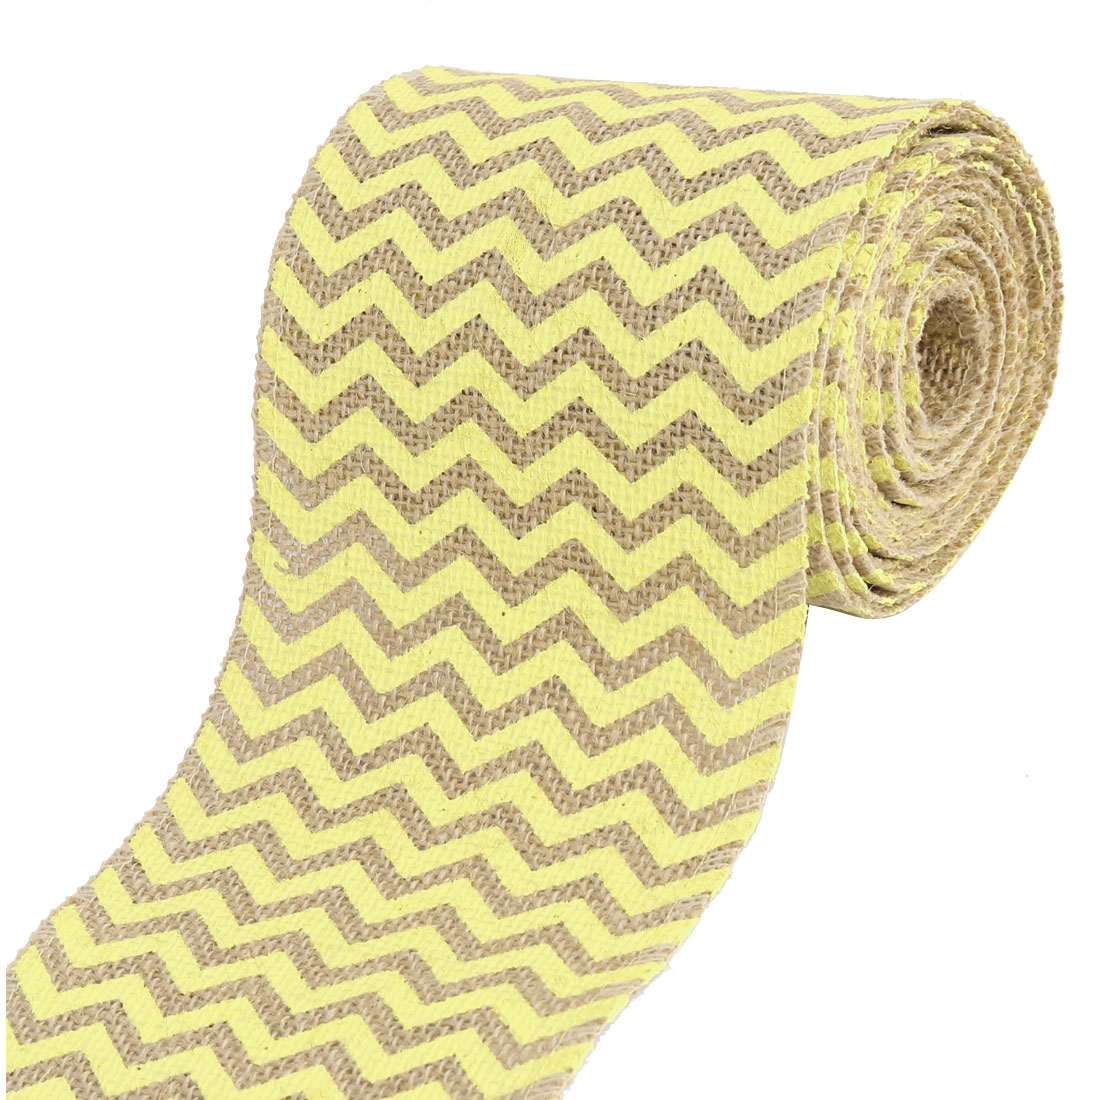 Home Jute Fiber Holiday Ornament Wave Pattern Burlap Roll Yellow 450cm Length